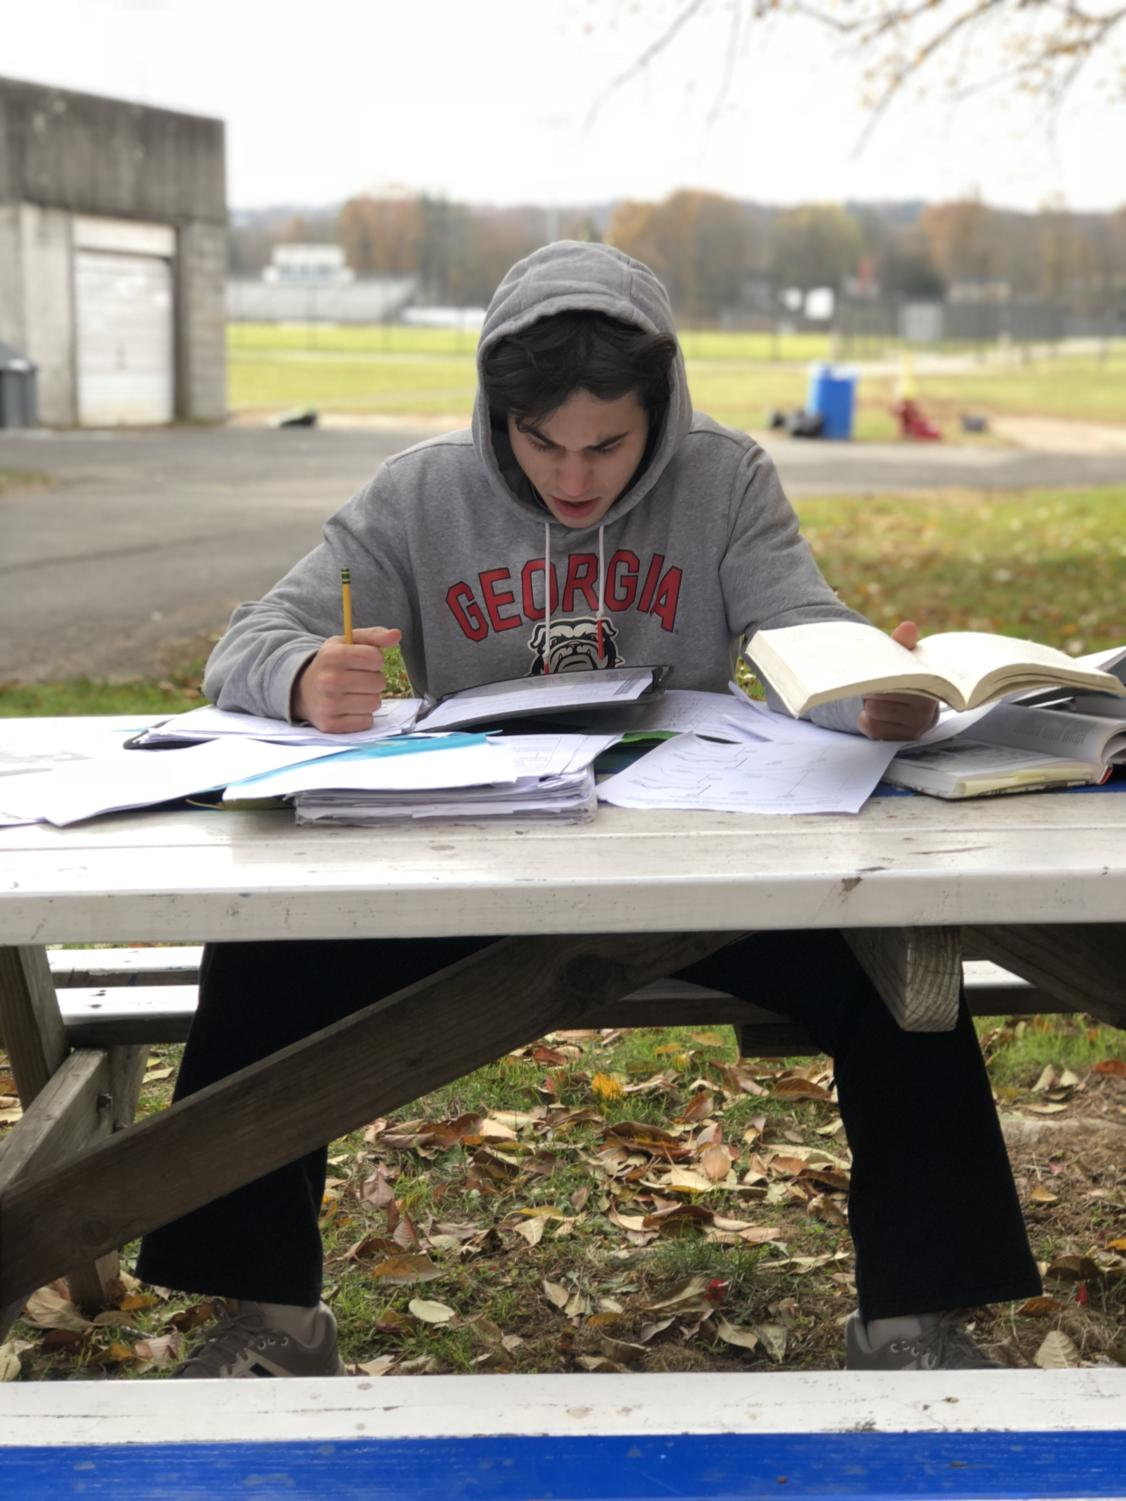 Student Colin Kuzia showing his frustration with the workload as midterms slowly creep up.